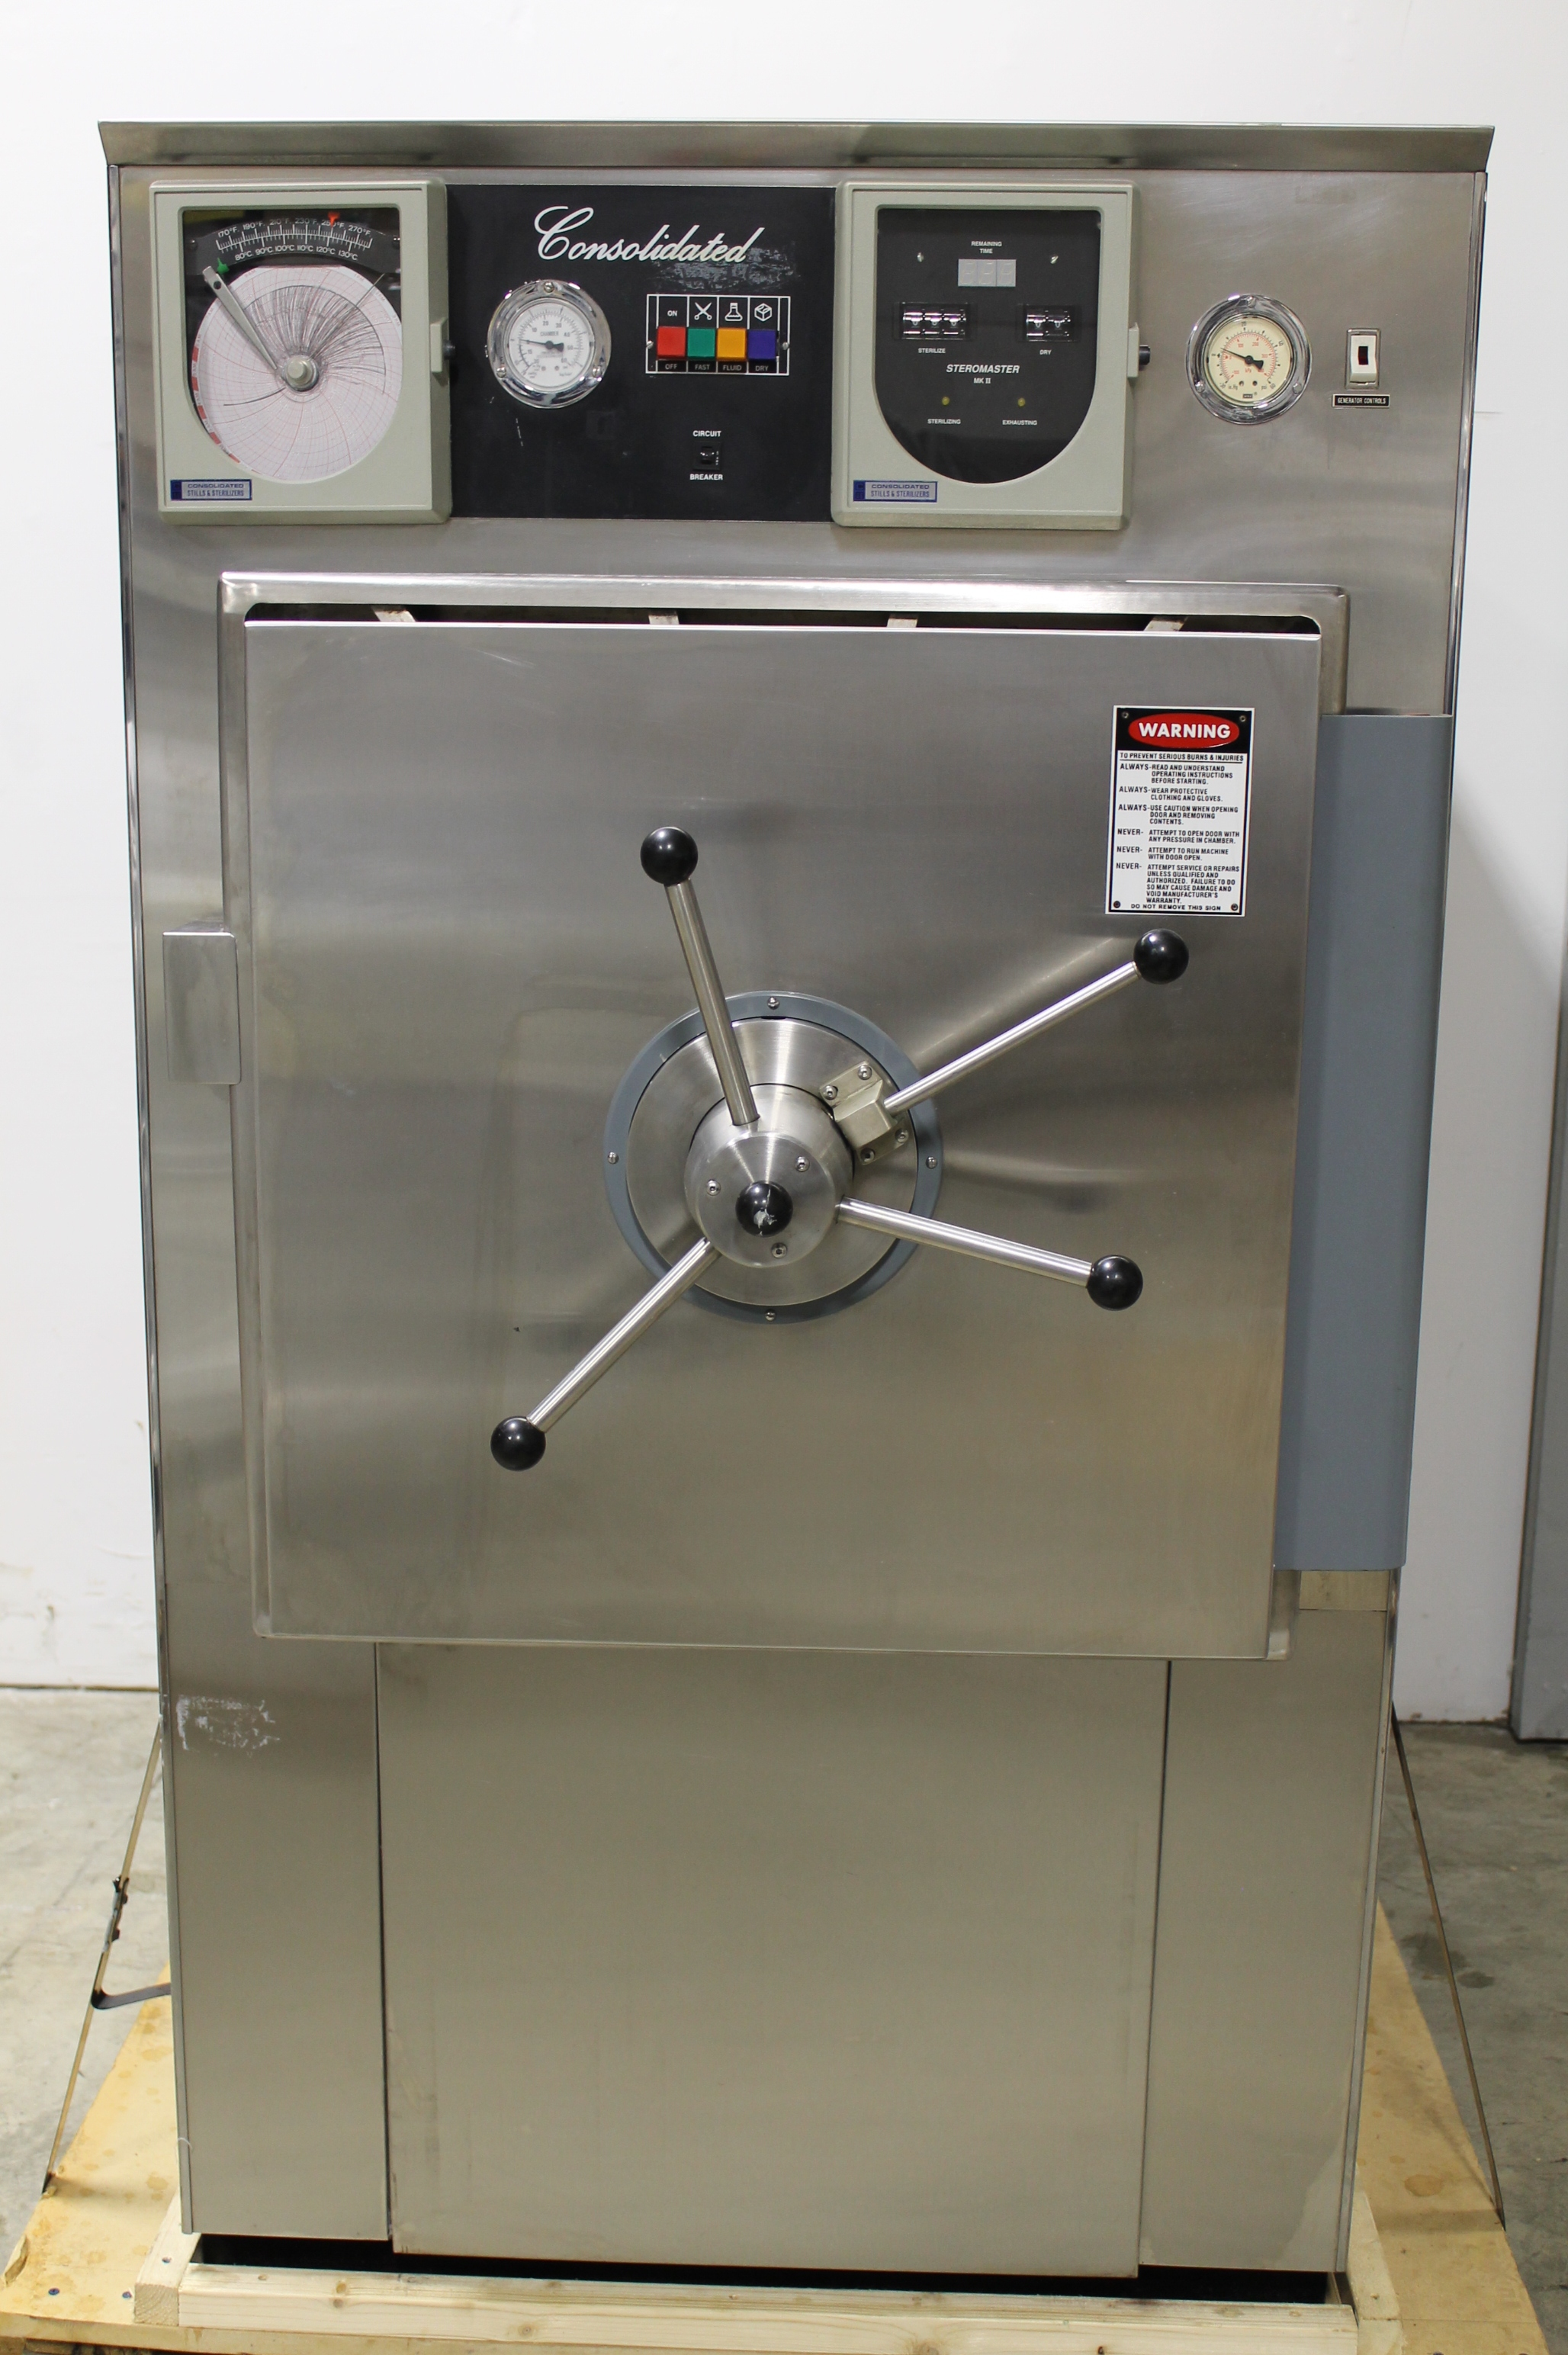 Consolidated Small Lab Series Steam Sterilizer Image